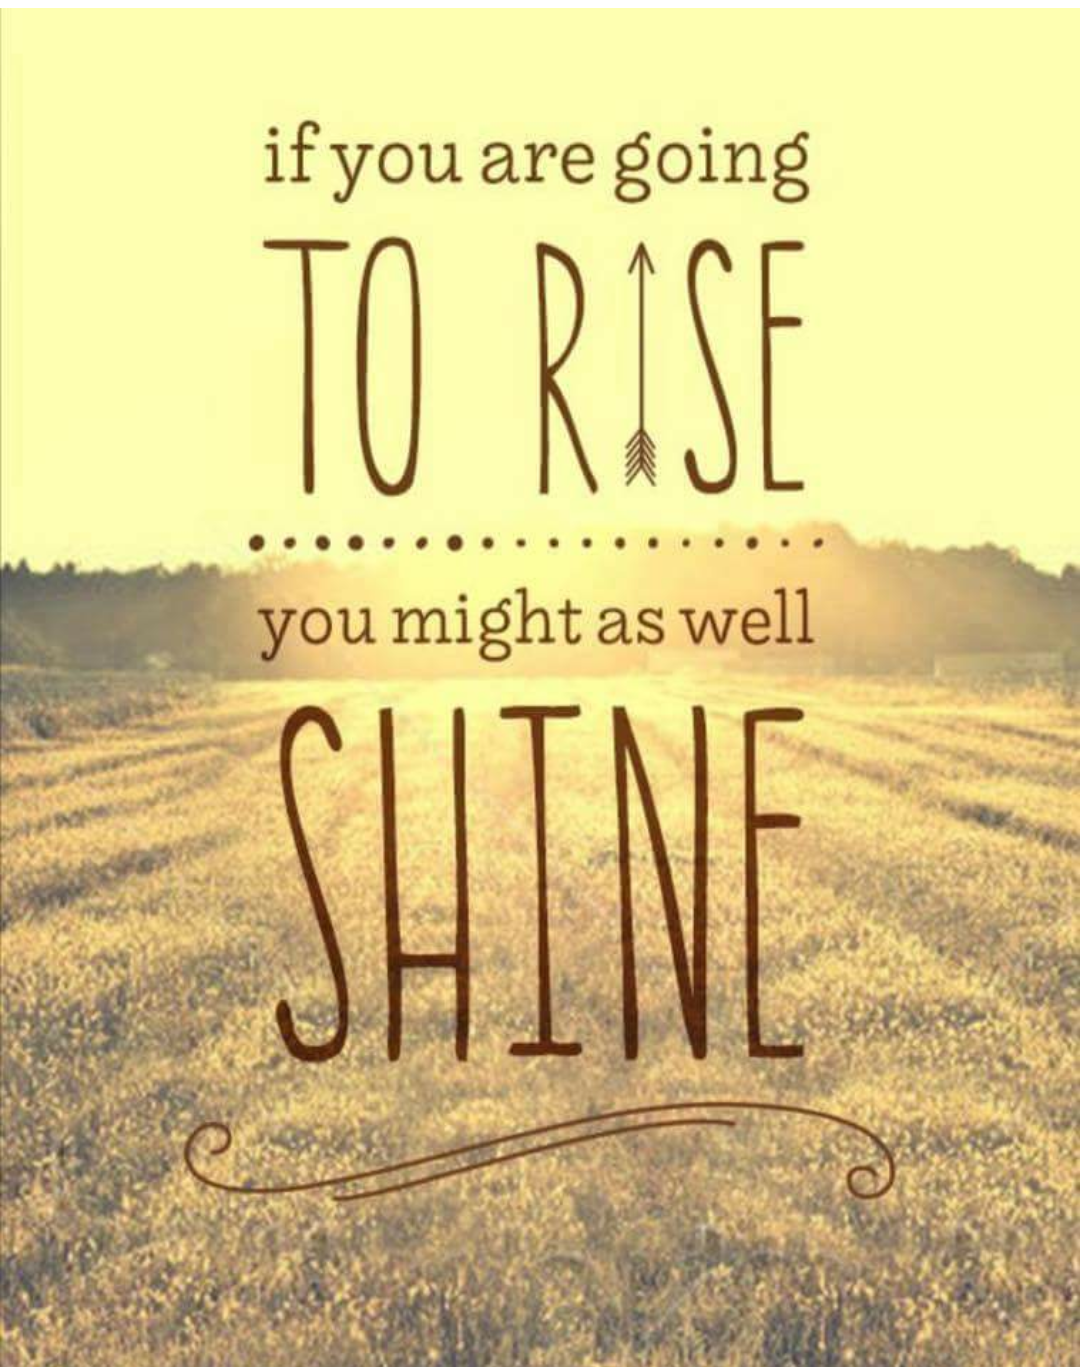 Pin by Jazmine Oleander on Quotes Sayings Shine quotes